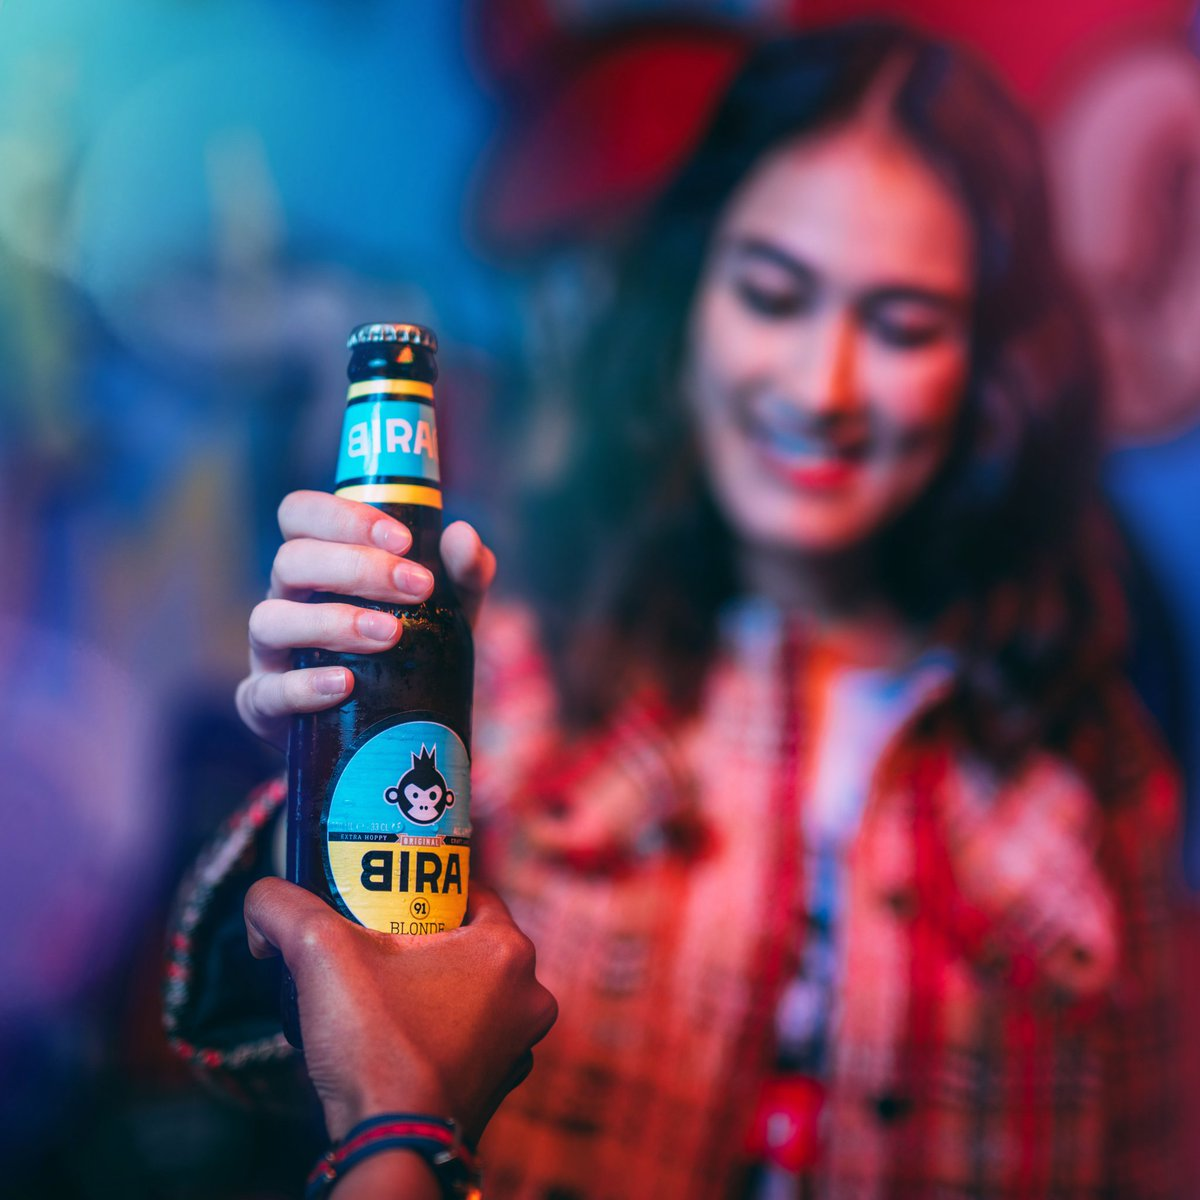 An appropriate representation of what we'll be doing all weekend🤟🏼🍻 . . . #Bira91 #Bira91Beers #Bira91Blonde #WeekendVibes #saturday https://t.co/6zYRCwHHRo